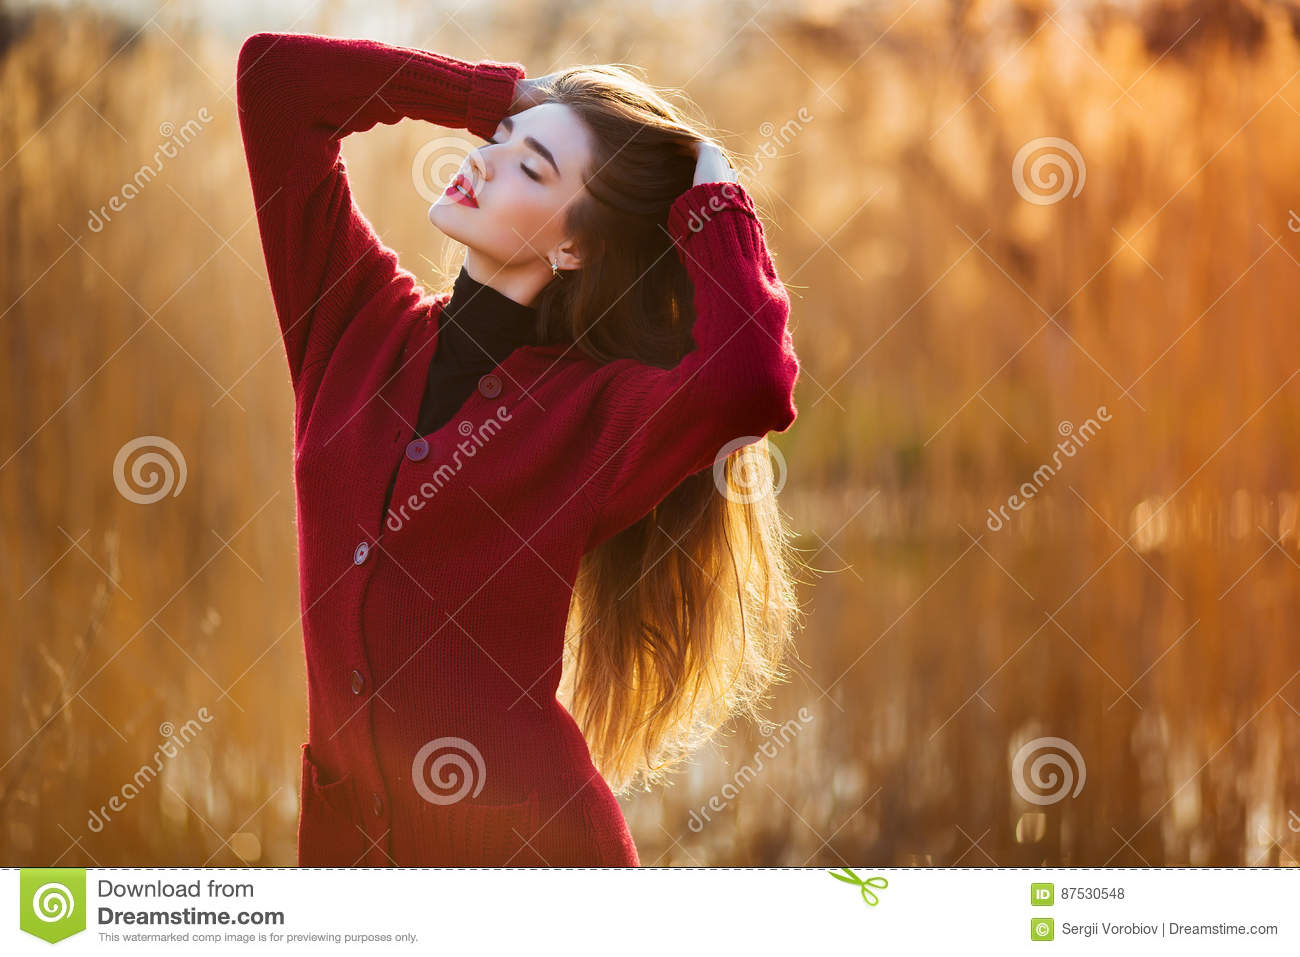 Free happy young woman. Beautiful female with long healthy blowing hair enjoying sun light in park at sunset. Spring